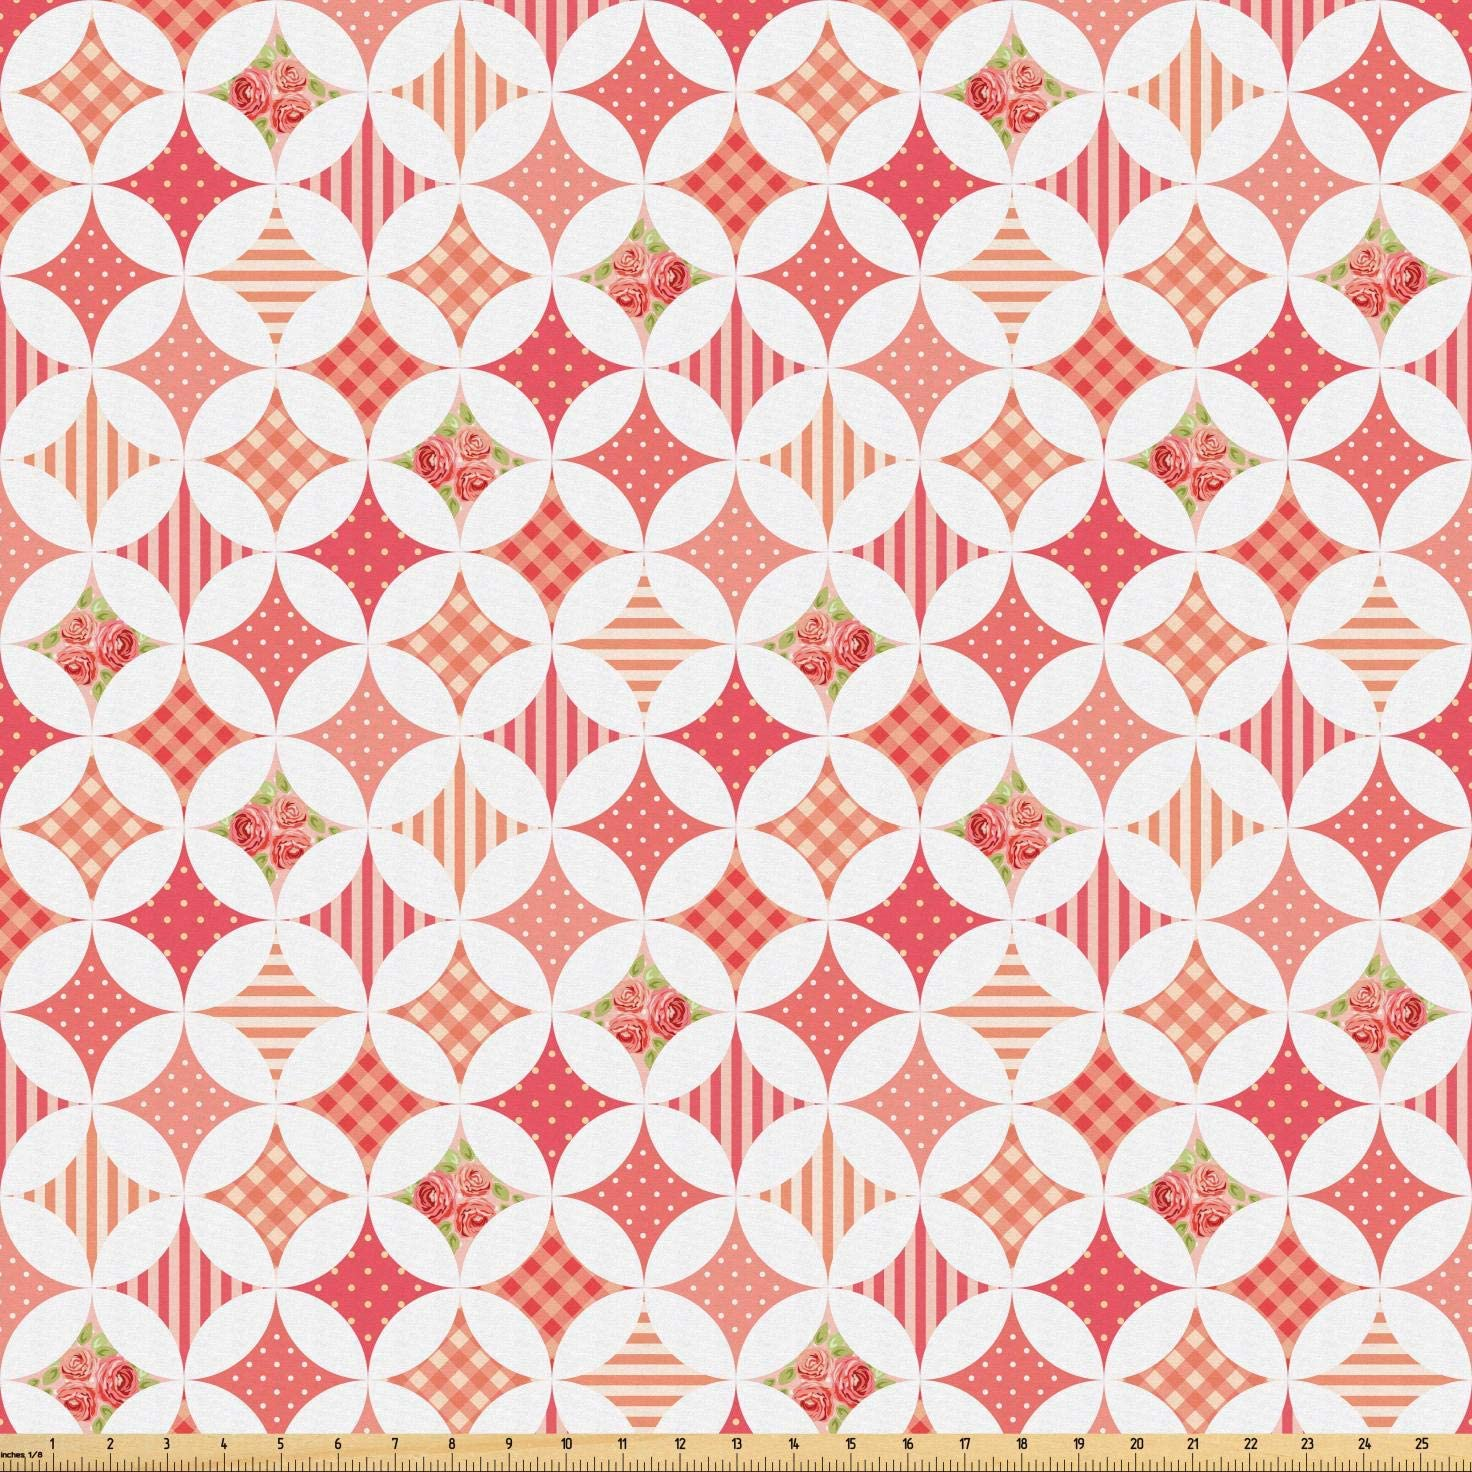 Lunarable Country Fabric by The Yard, Intertwined Circles Gingham Polka Dot Candy Stripe Floral Rose Leaves Pattern, Microfiber Fabric for Arts and Crafts Textiles & Decor, 1 Yard, Coral White